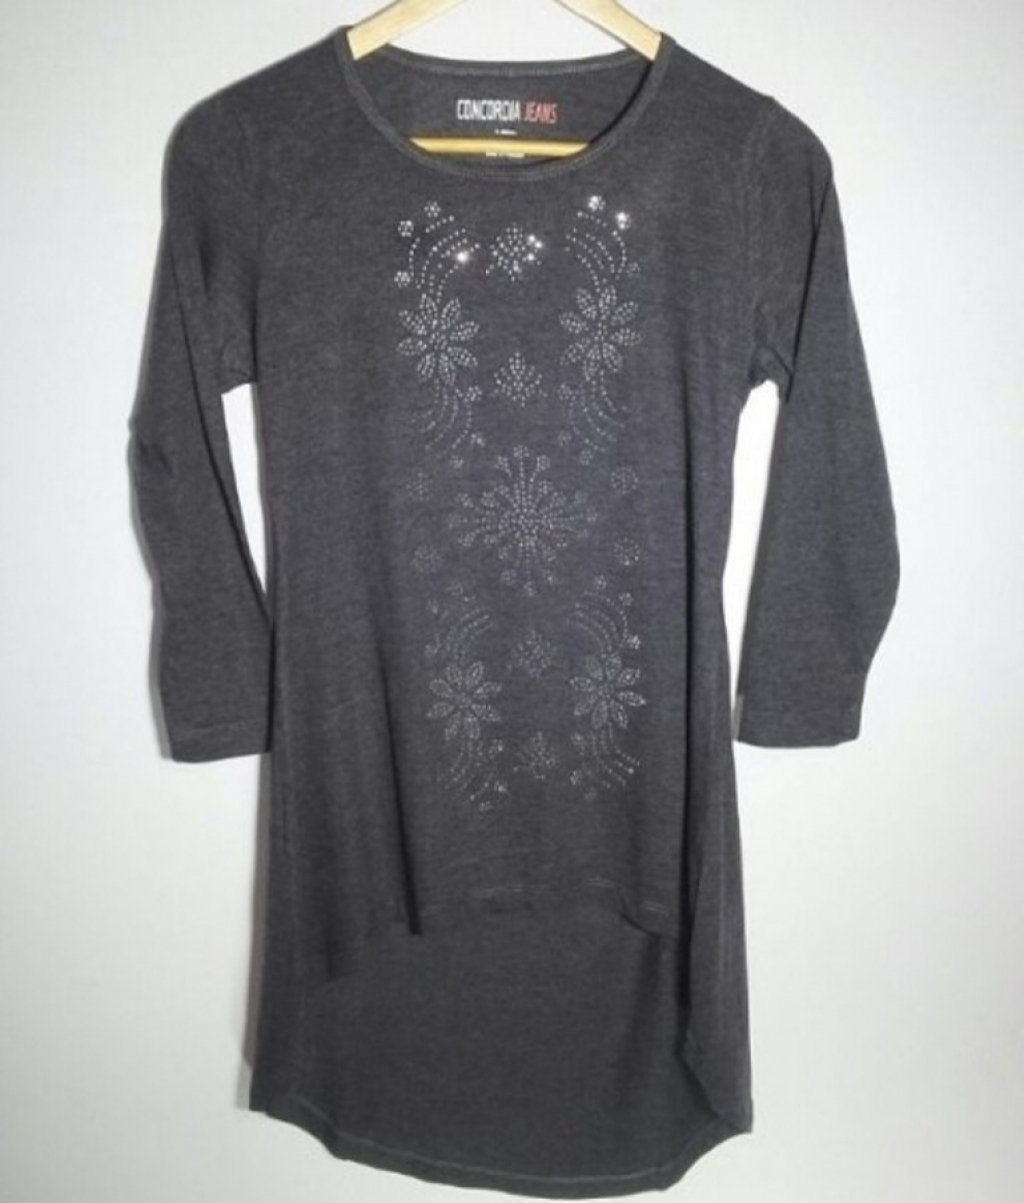 15088464760_Affordable_WOMENS_TALL_TEE_(CHARCOAL_COLOR).jpg